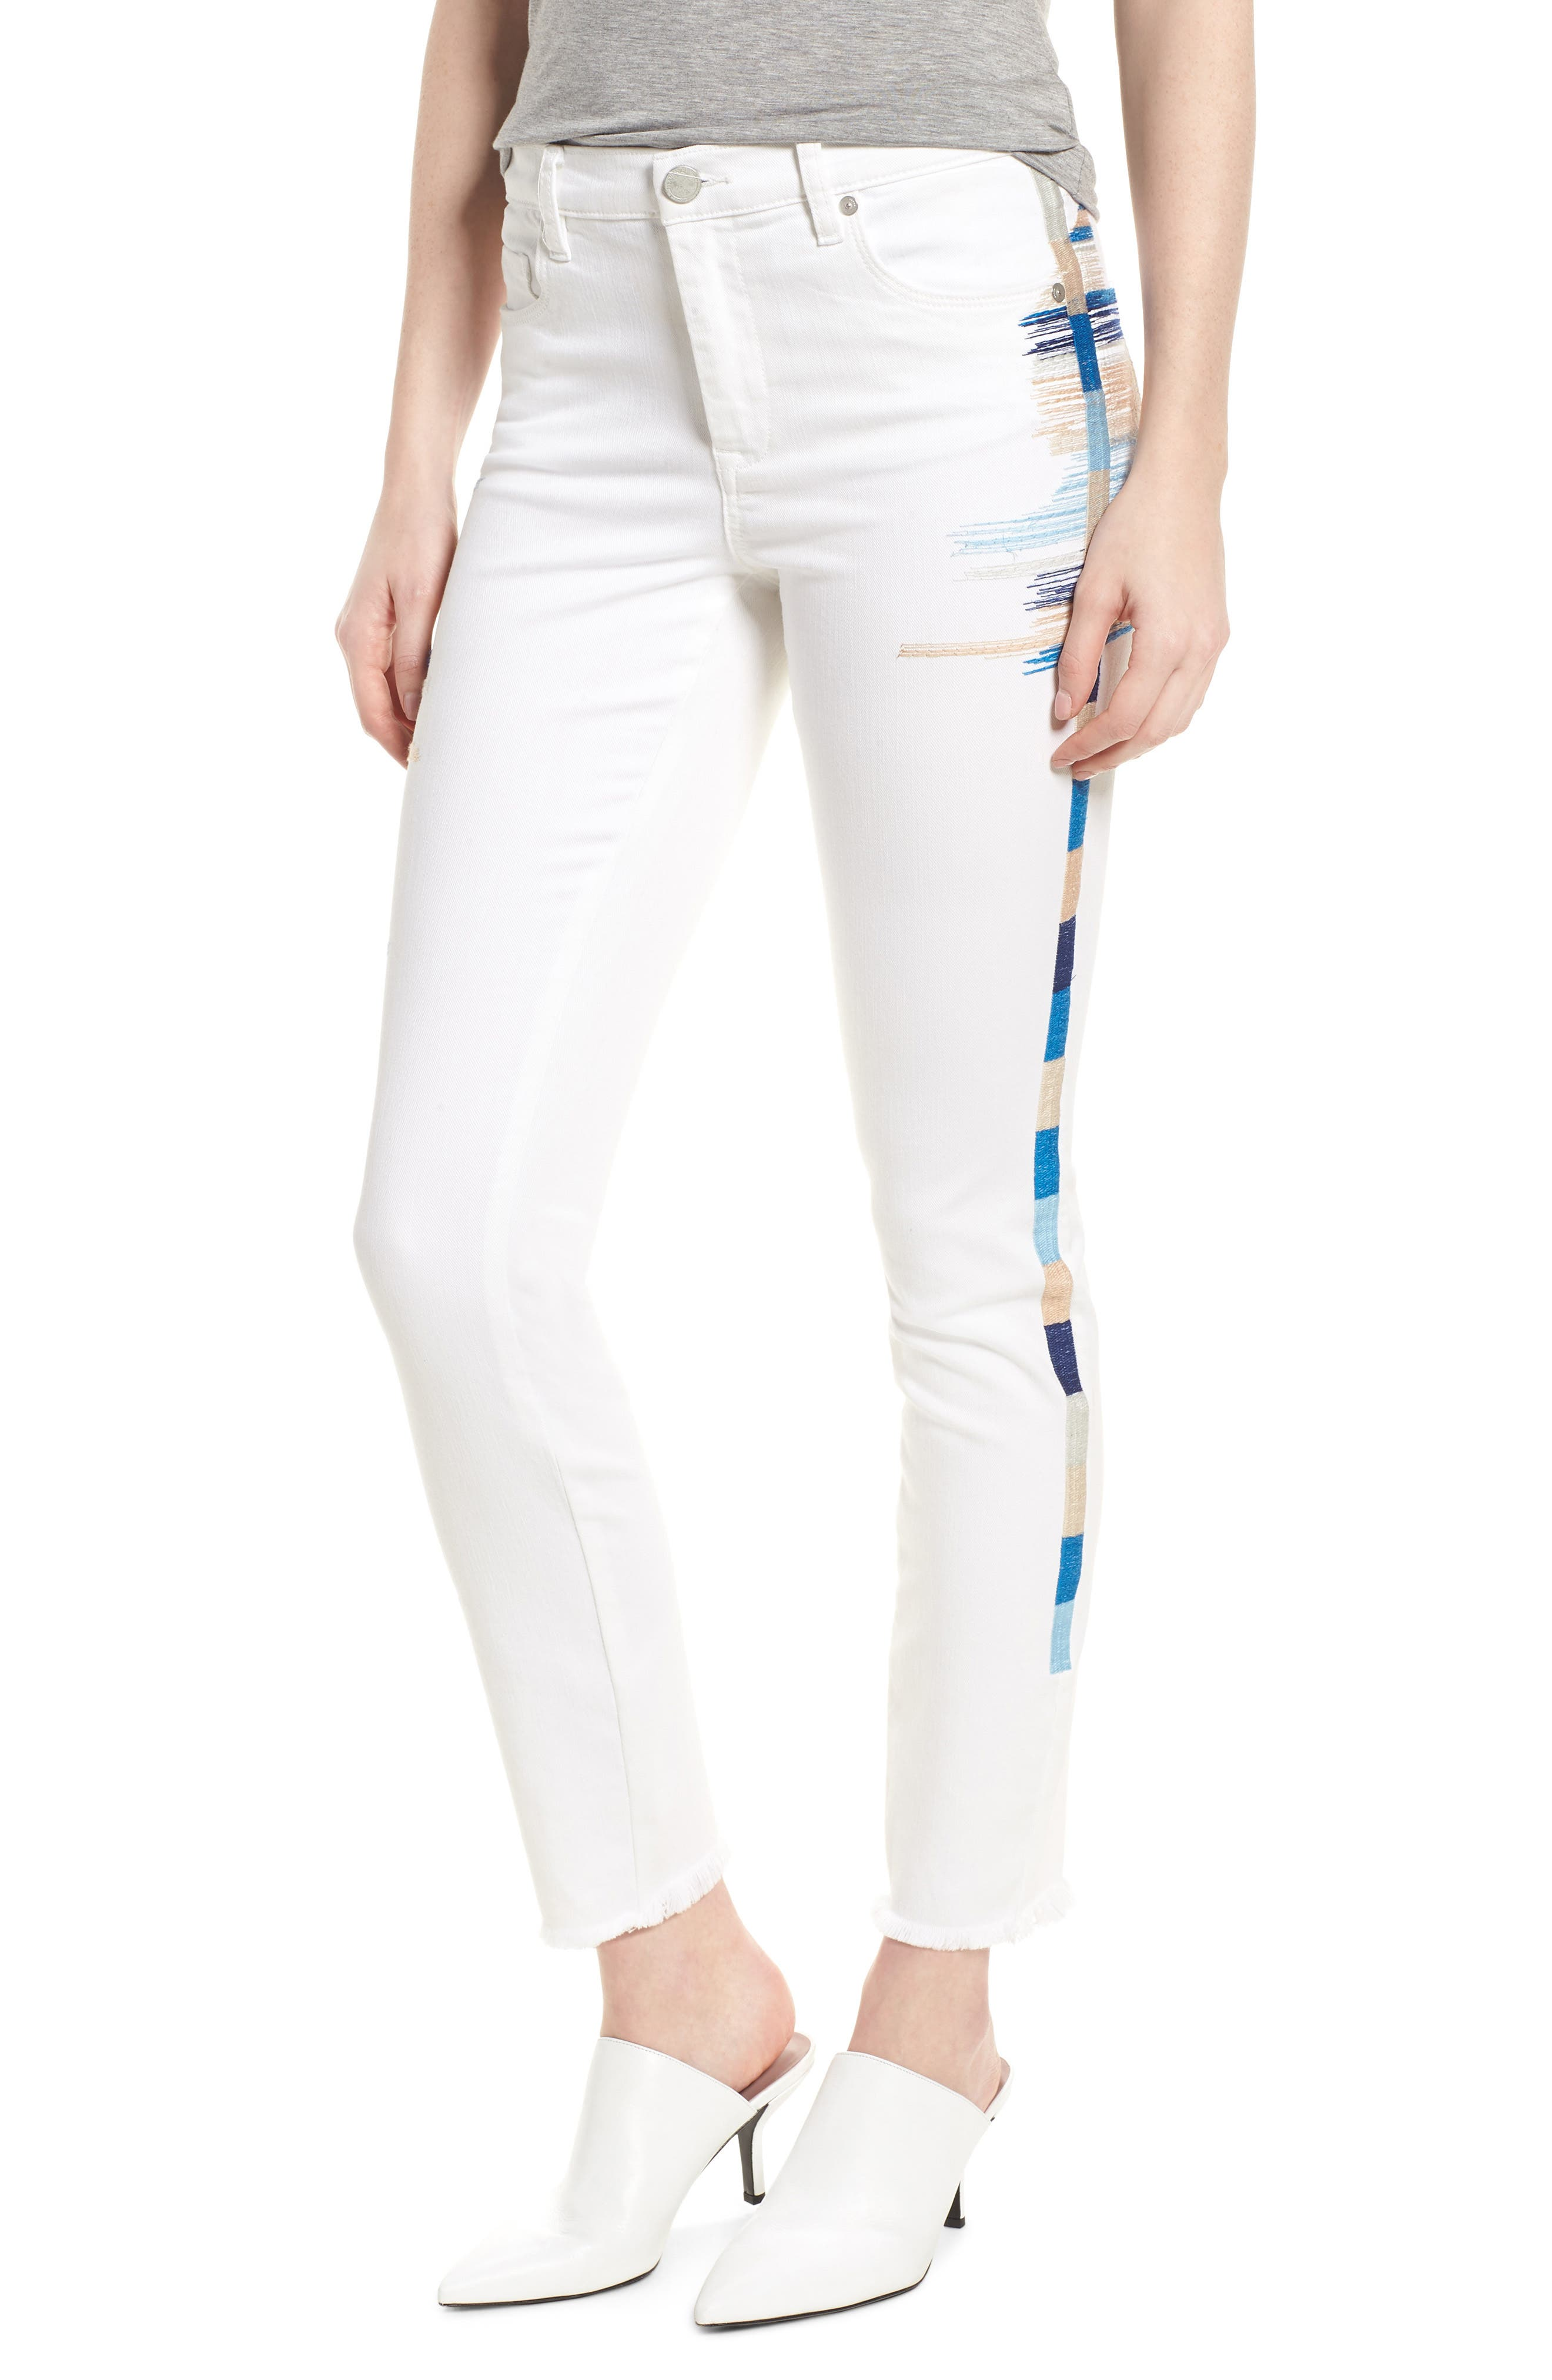 Bond Embroidered Skinny Jeans,                             Main thumbnail 1, color,                             Best Coast